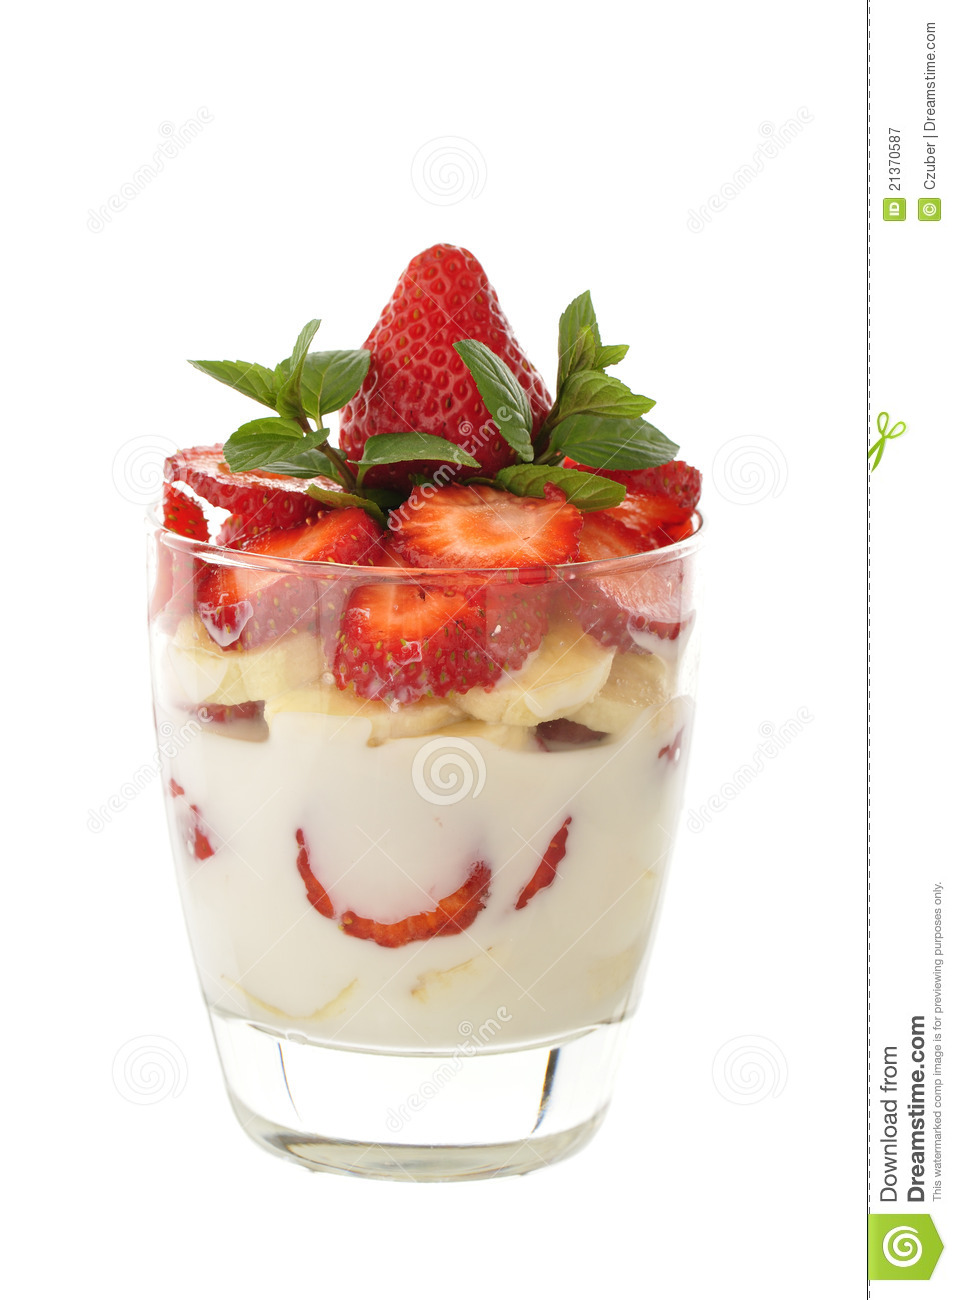 Fruit Cup Royalty Free Stock Photography   Image  21370587